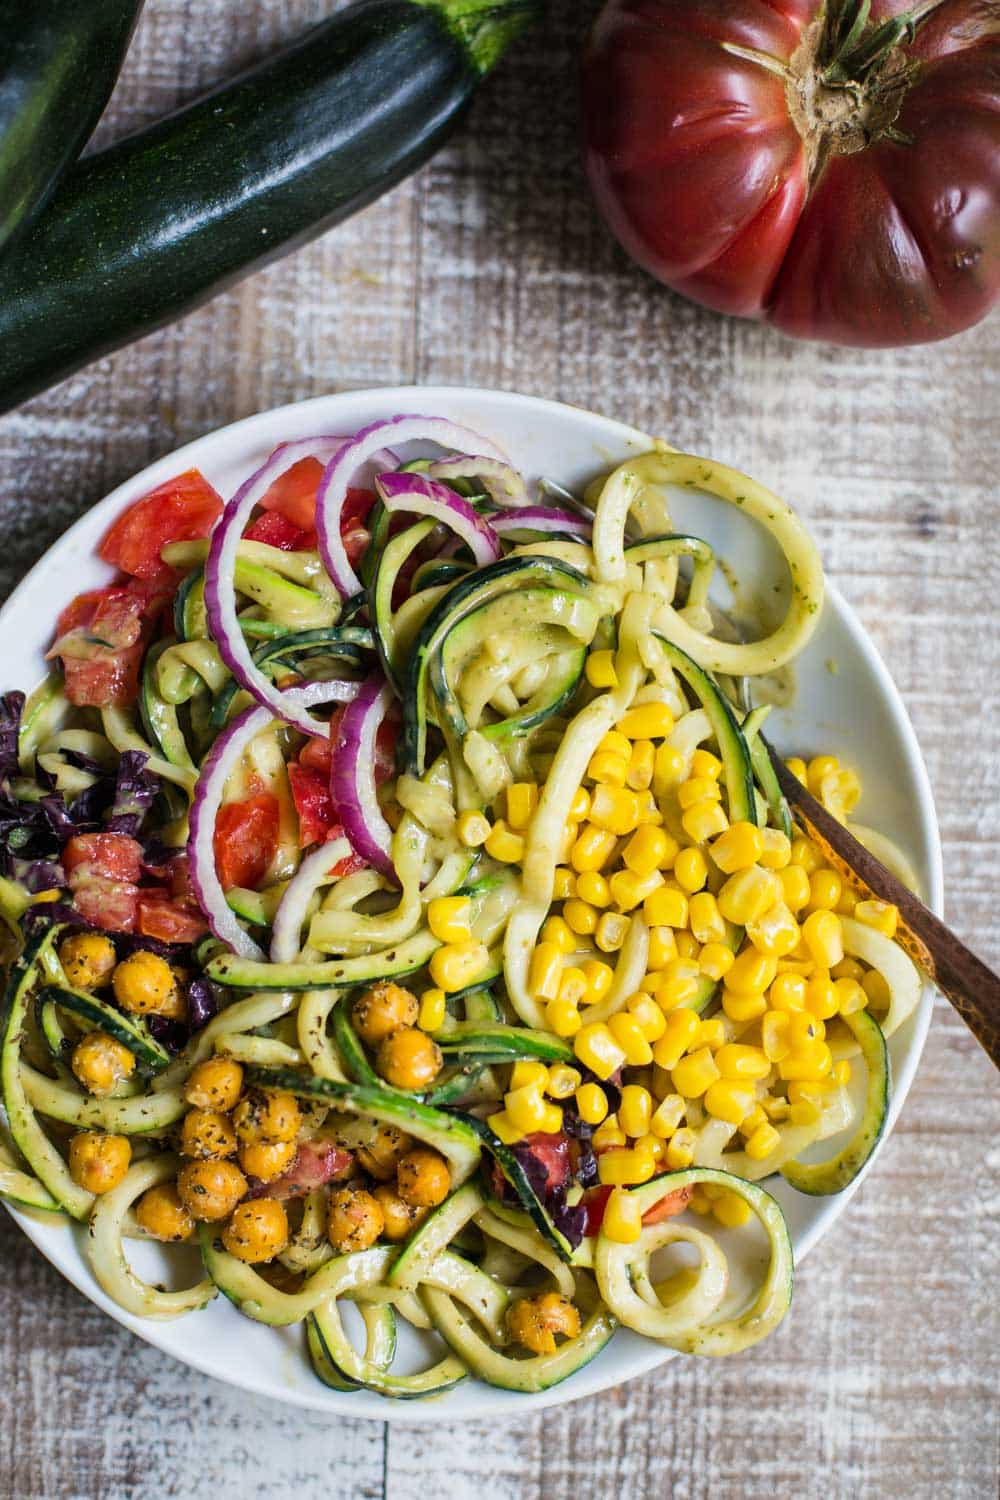 Summer Harvest Zoodles- Zucchini noodles covered in avocado sauce and topped with lots of veggies and chickpeas!!